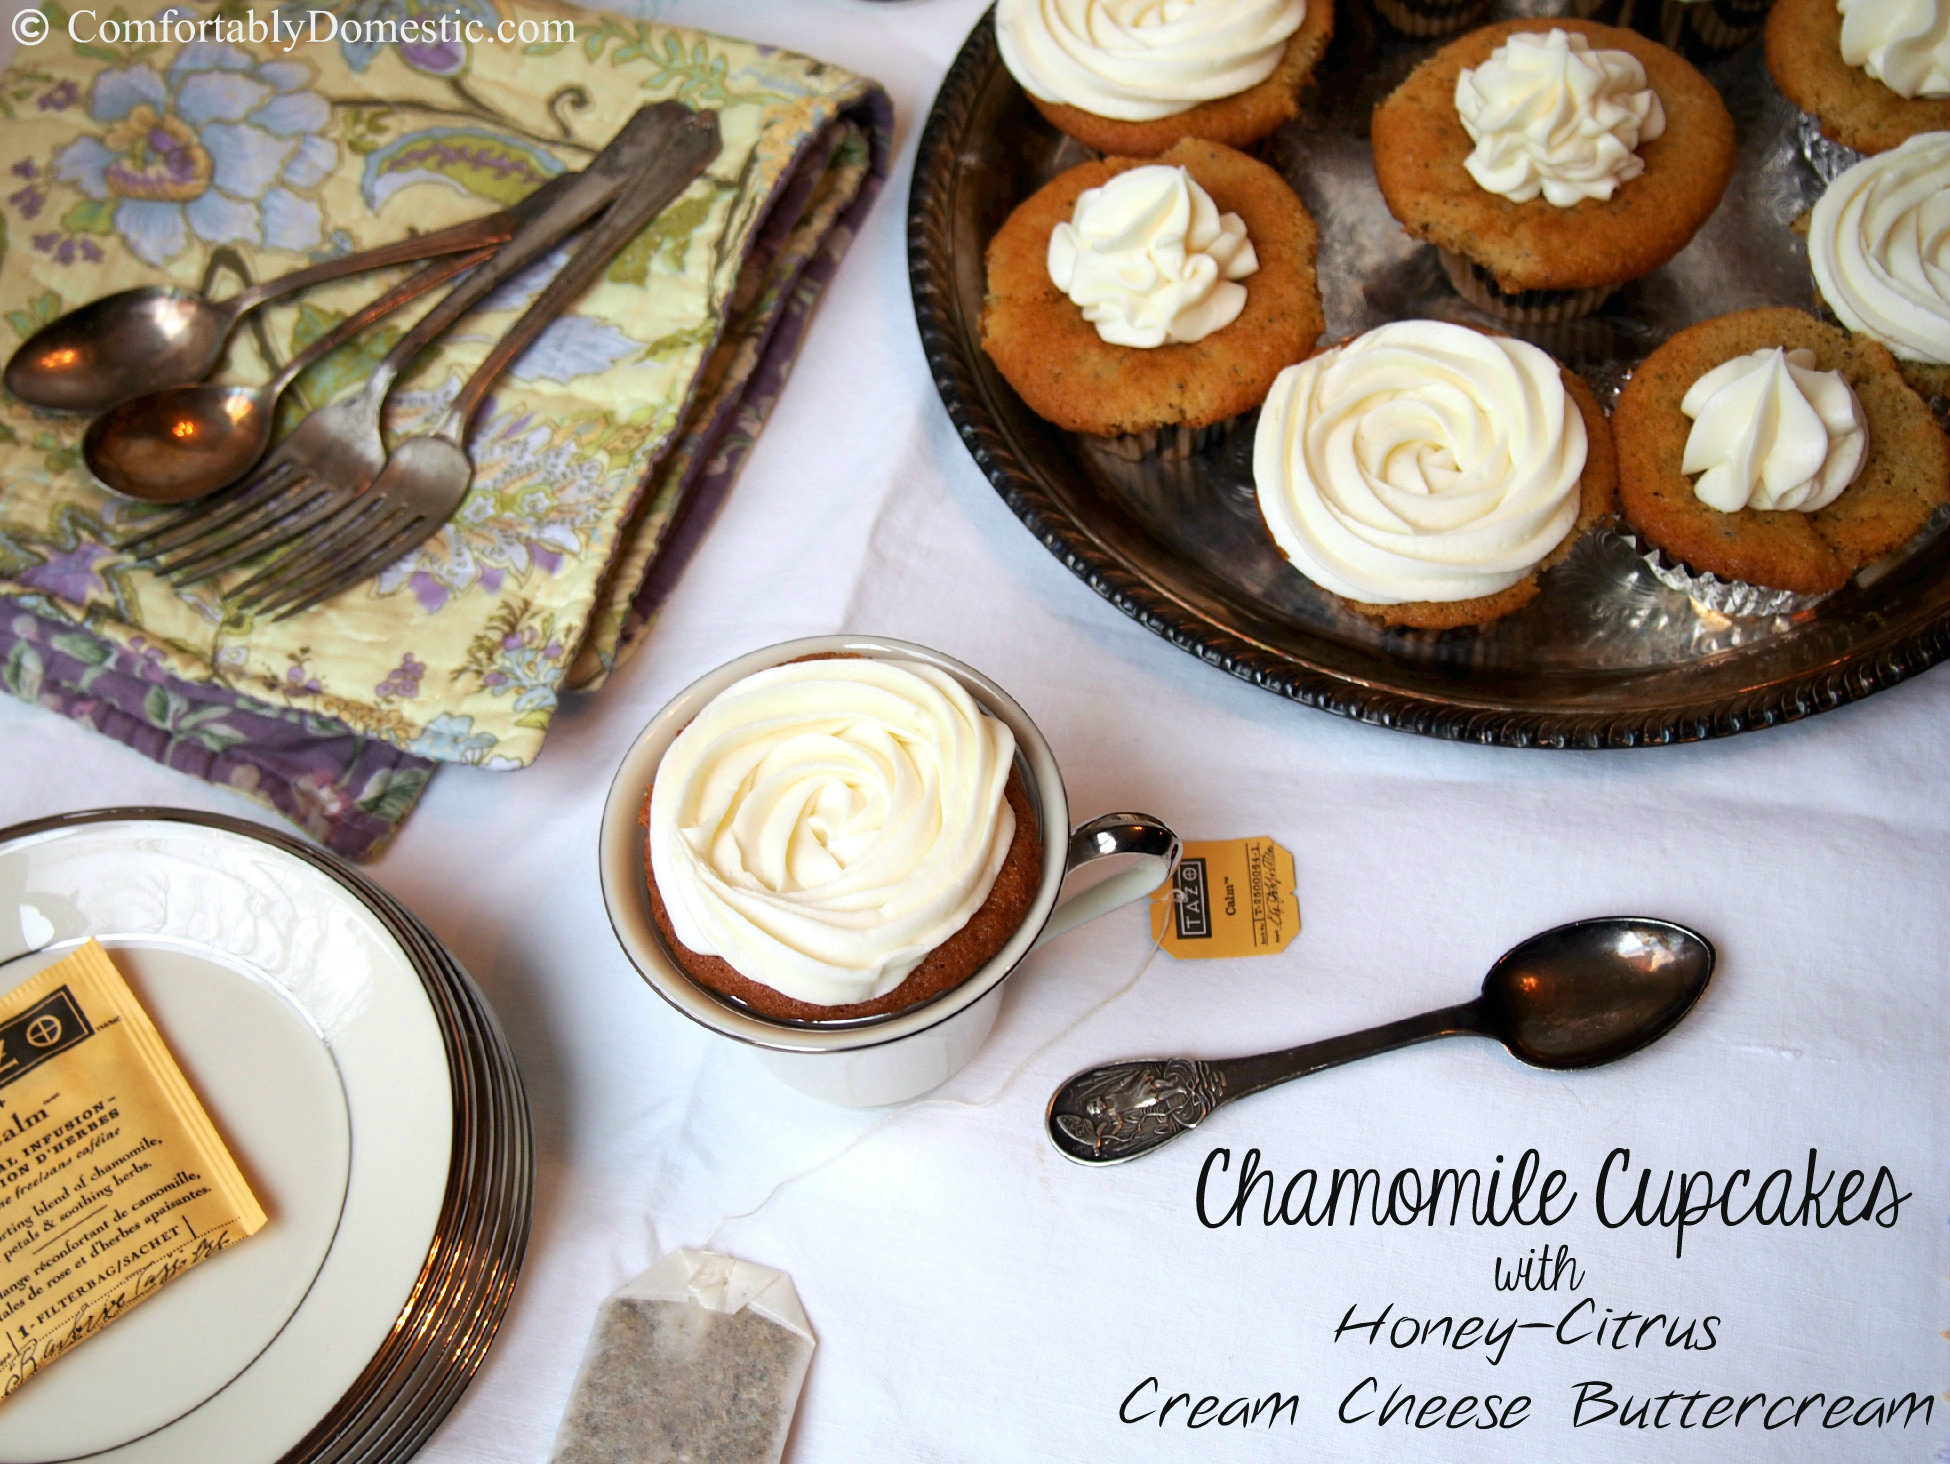 Chamomile Cupcakes with Honey-Citrus Cream Cheese Buttercream Frosting | ComfortablyDomestic.com